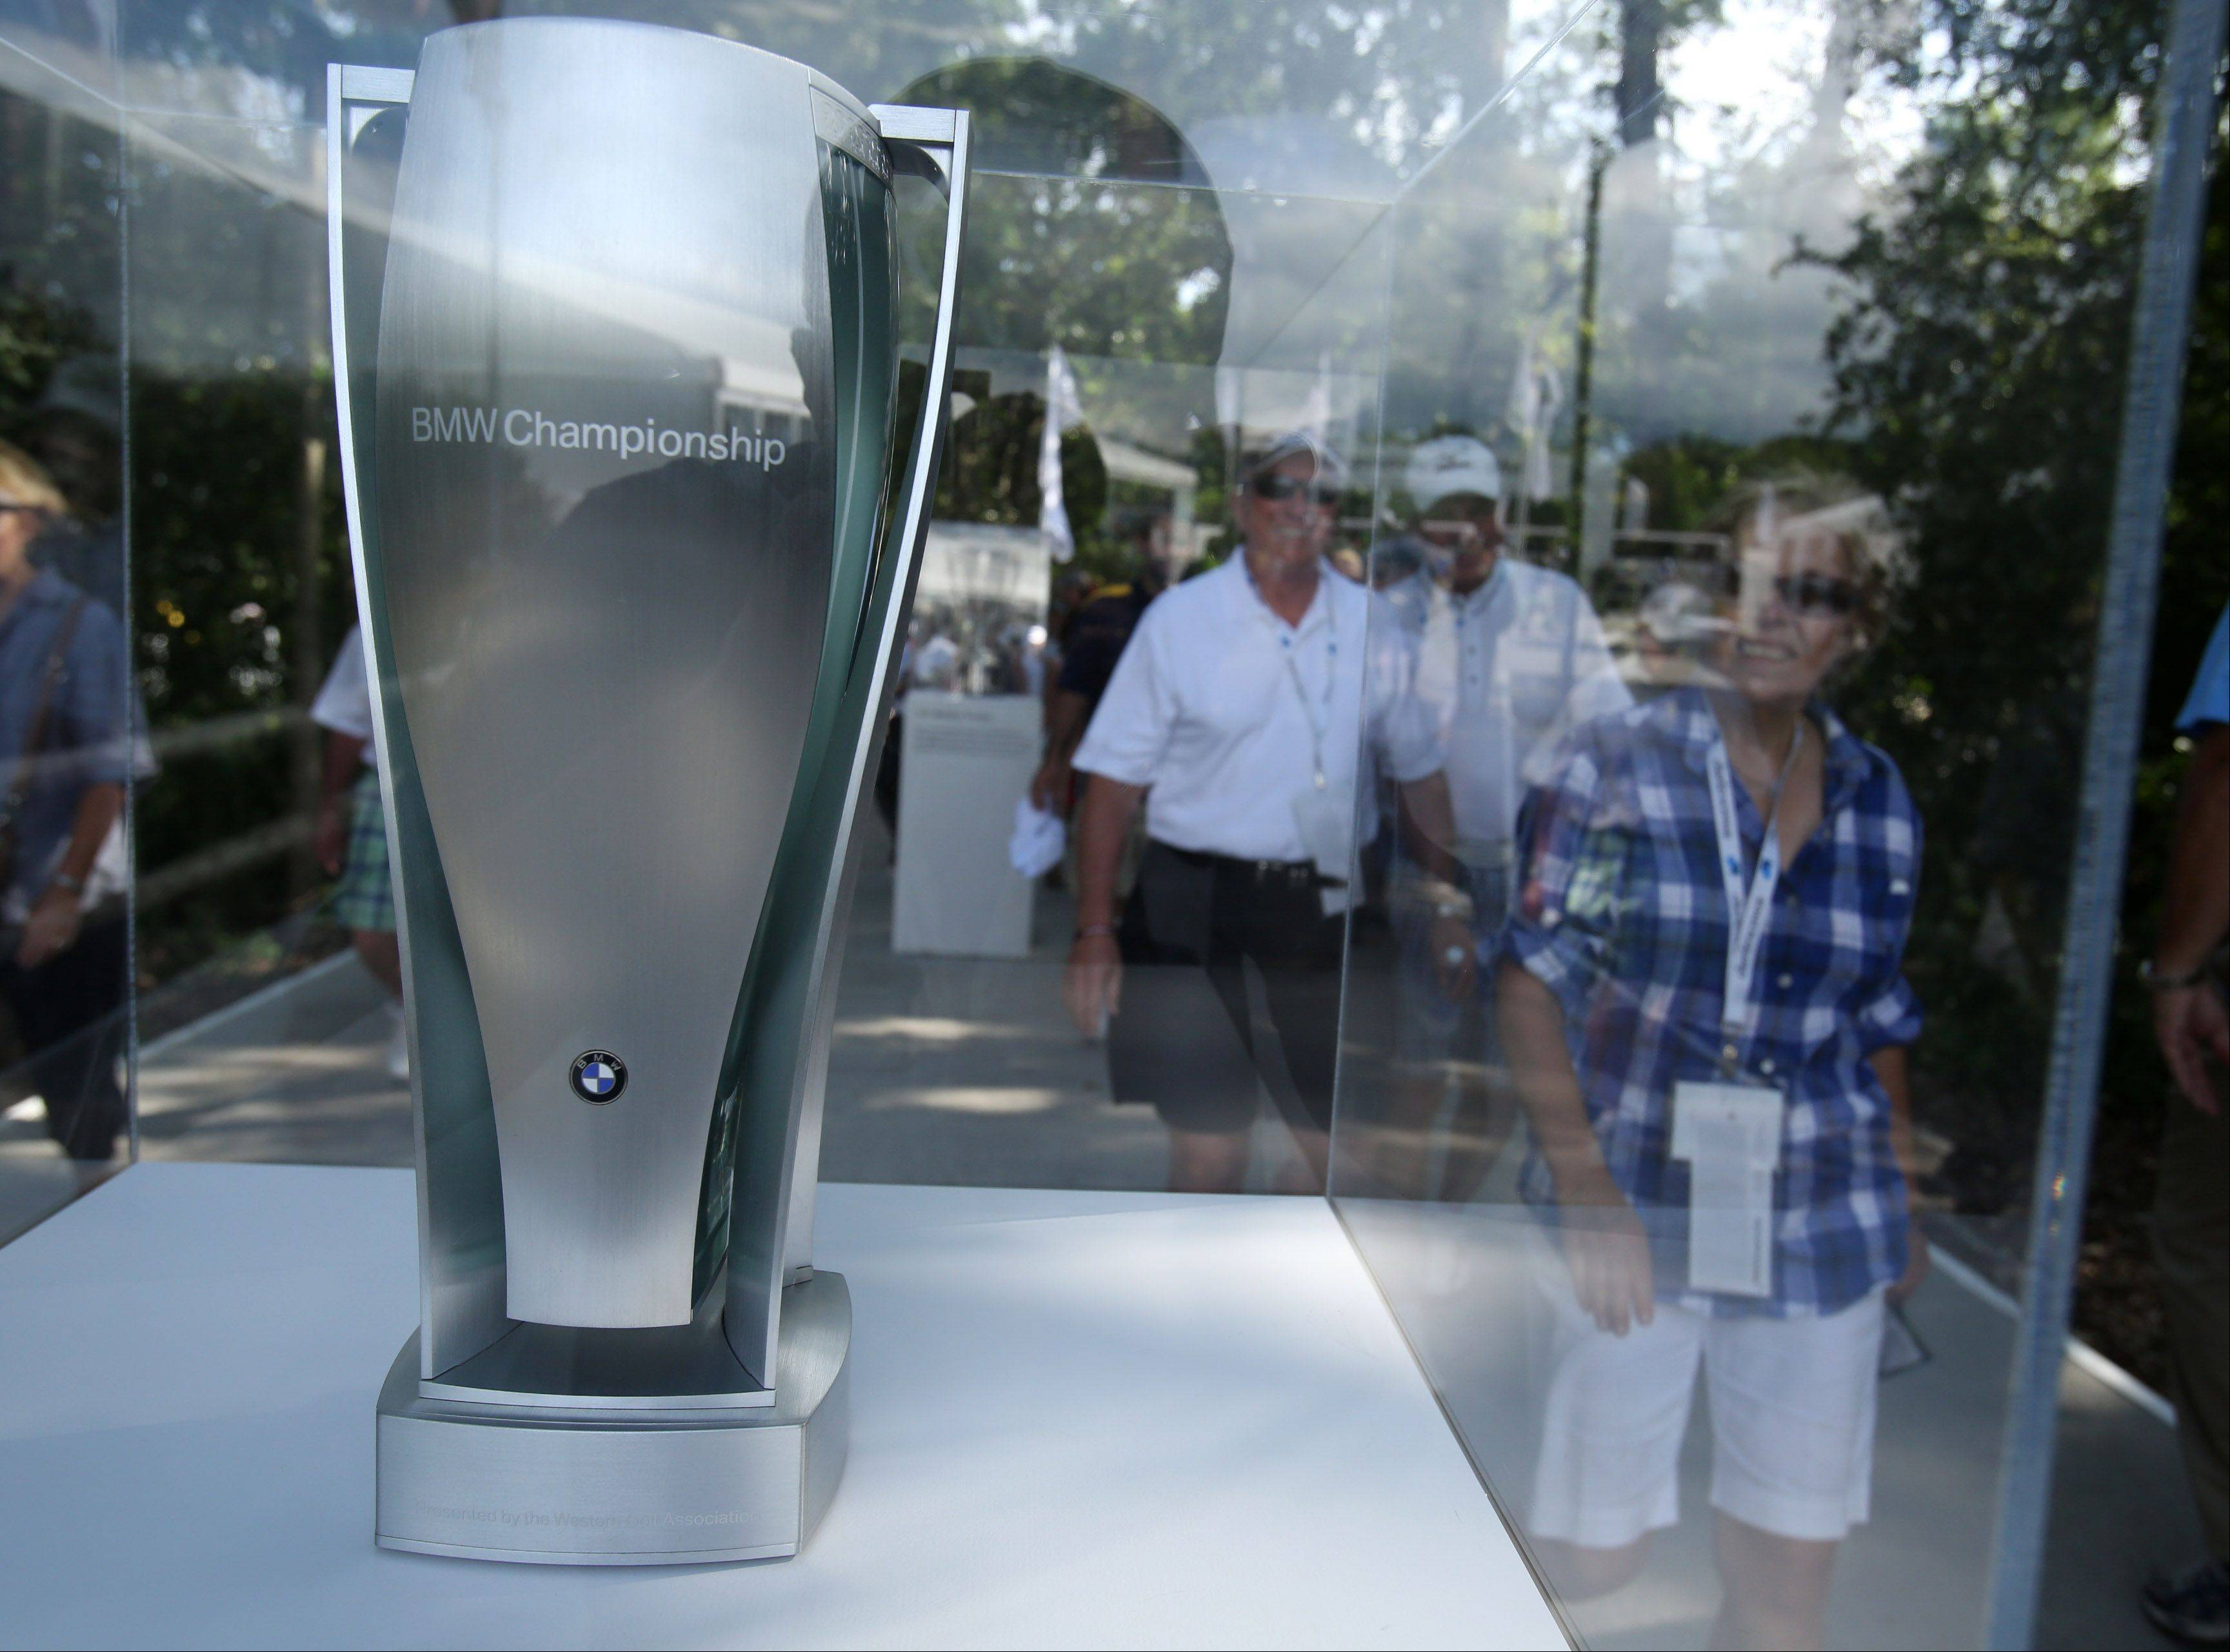 The BMW Championship trophy on display.